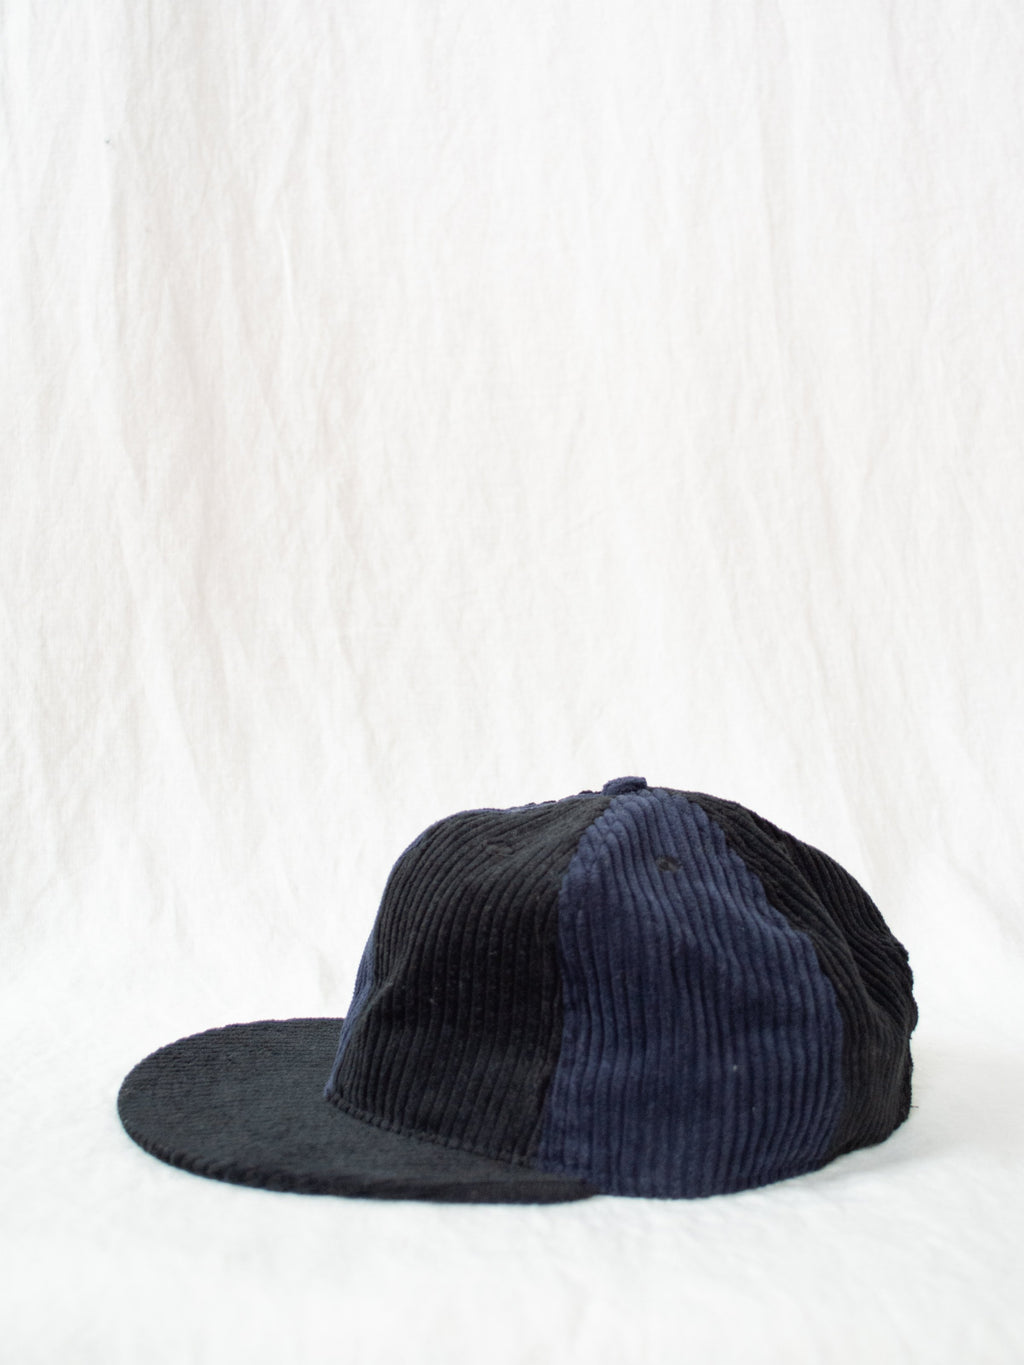 Ball Cap - Black/Navy